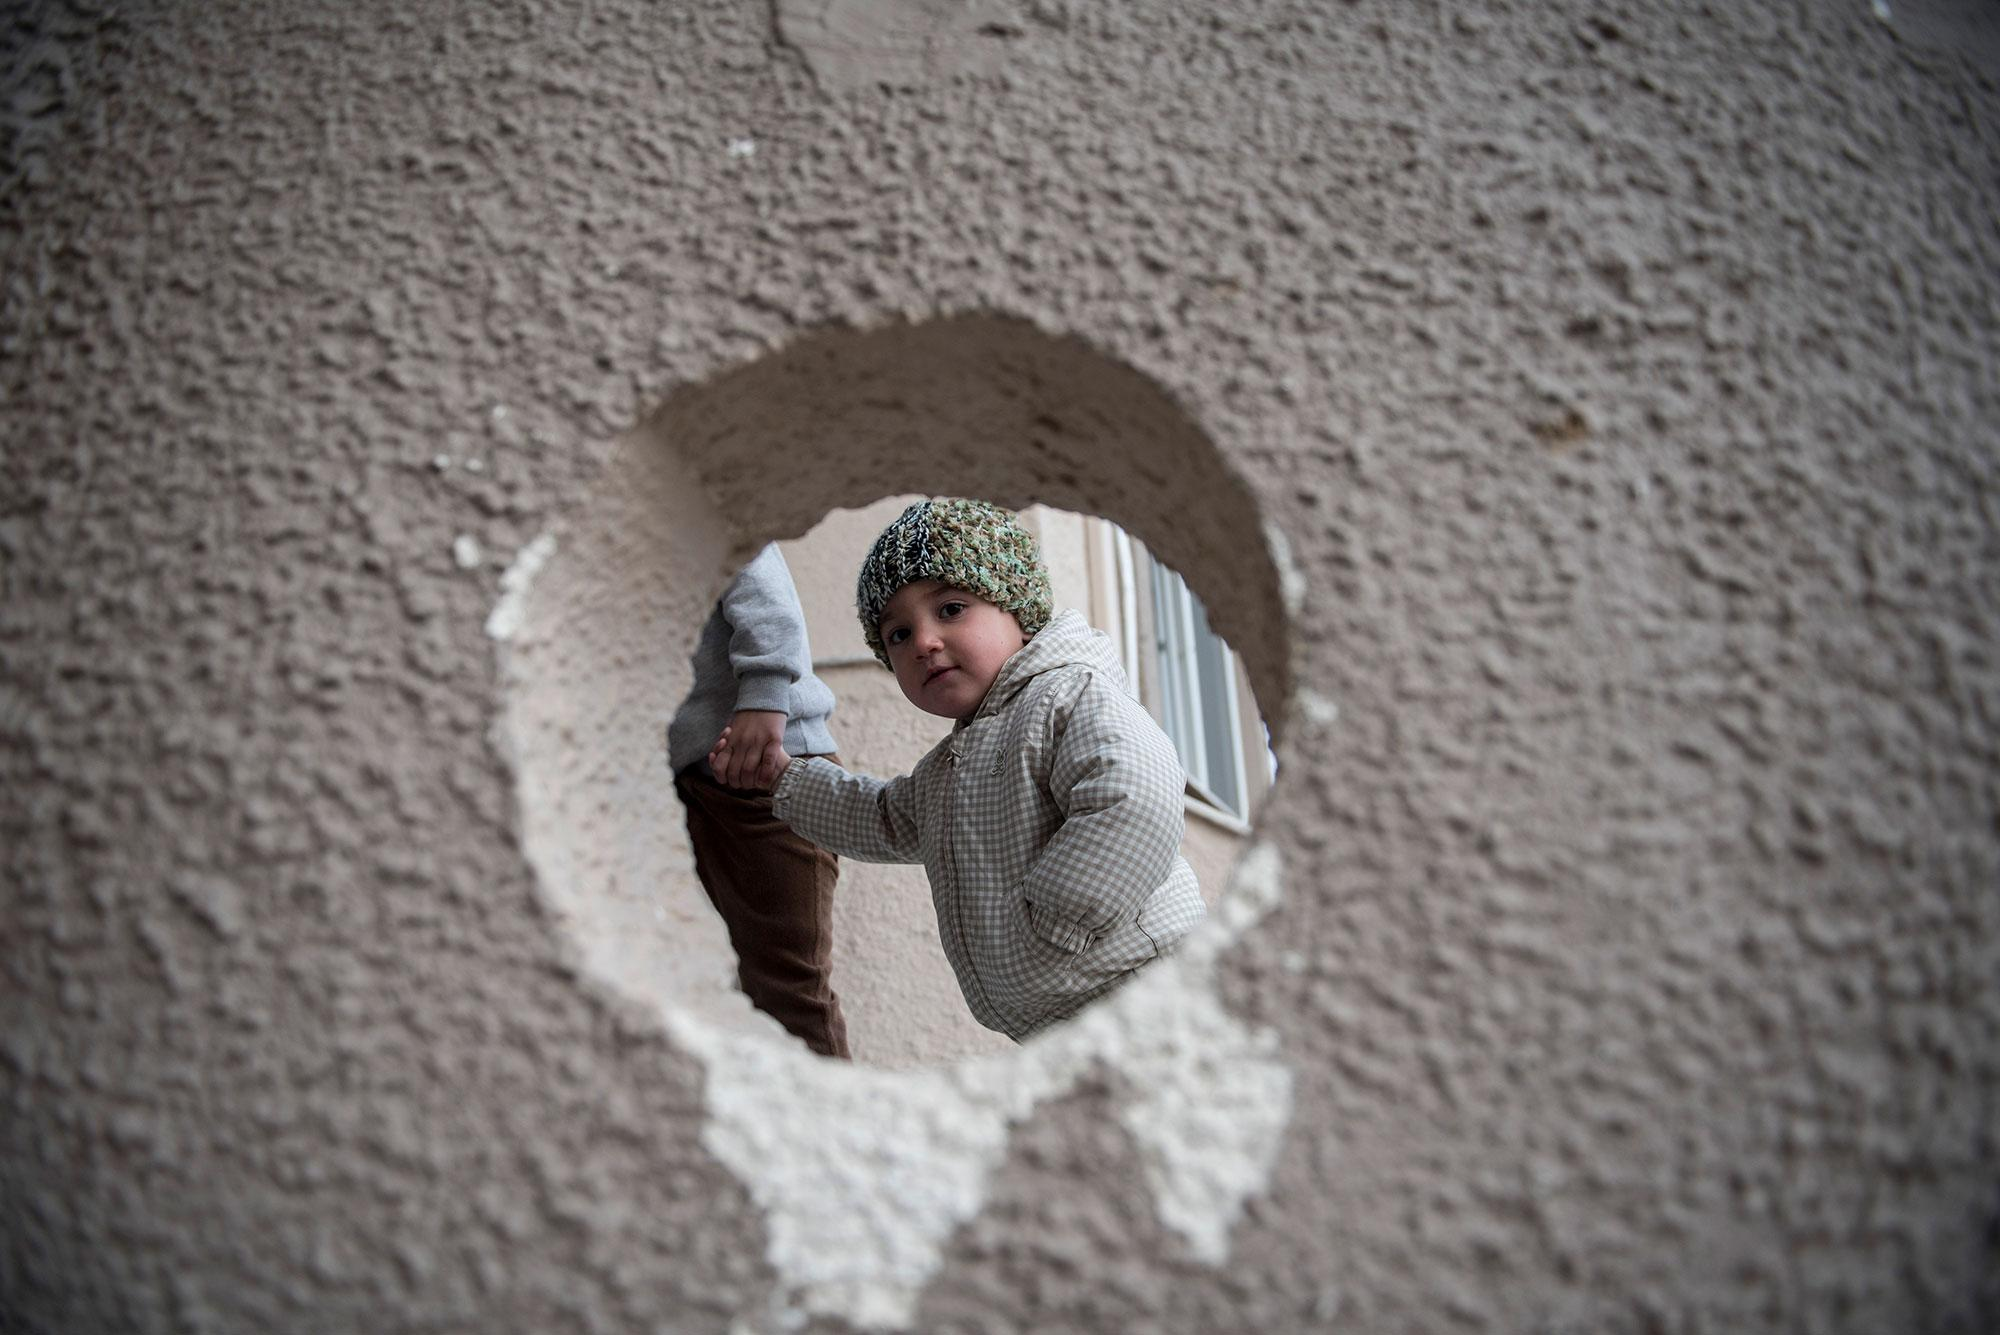 <p>A Yazidi refugee child is seen through a hole on a wall, in the northern Greek village of Agios Athanasios, near Thessaloniki city, on Wednesday, Dec. 21, 2016. Over 62,000 refugees and other migrants stuck in Greece after a series of Balkan border closures and a European Union deal with Turkey to stop migrant flows.(Photo: Giannis Papanikos/AP) </p>